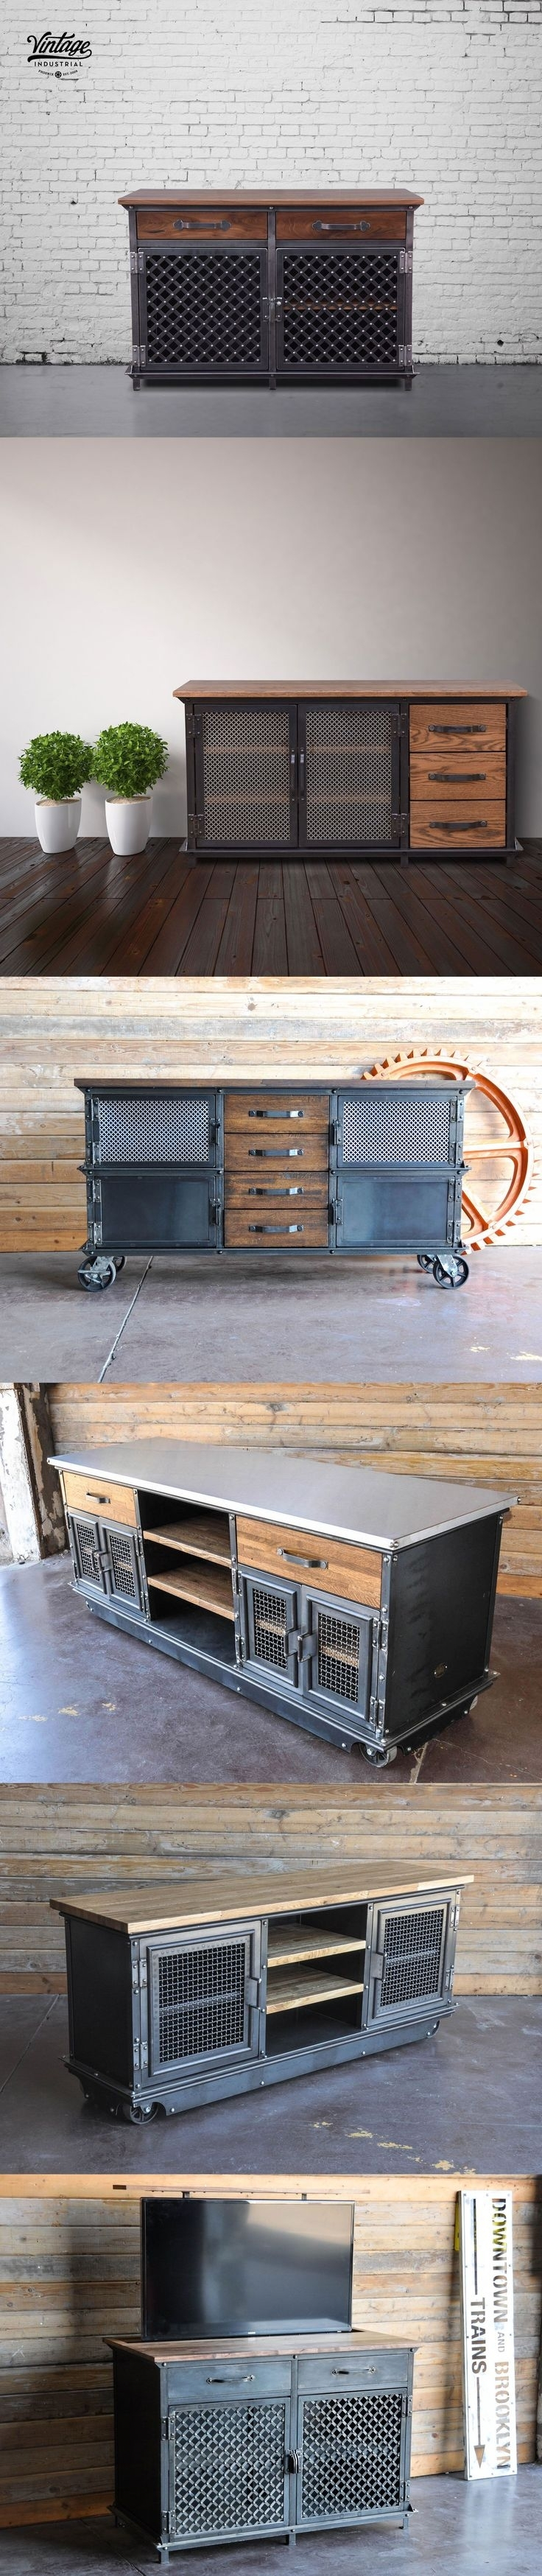 21 Best Diy Images On Pinterest | Home Ideas, Furniture And Woodworking For Marbled Axton Sideboards (Photo 19 of 26)